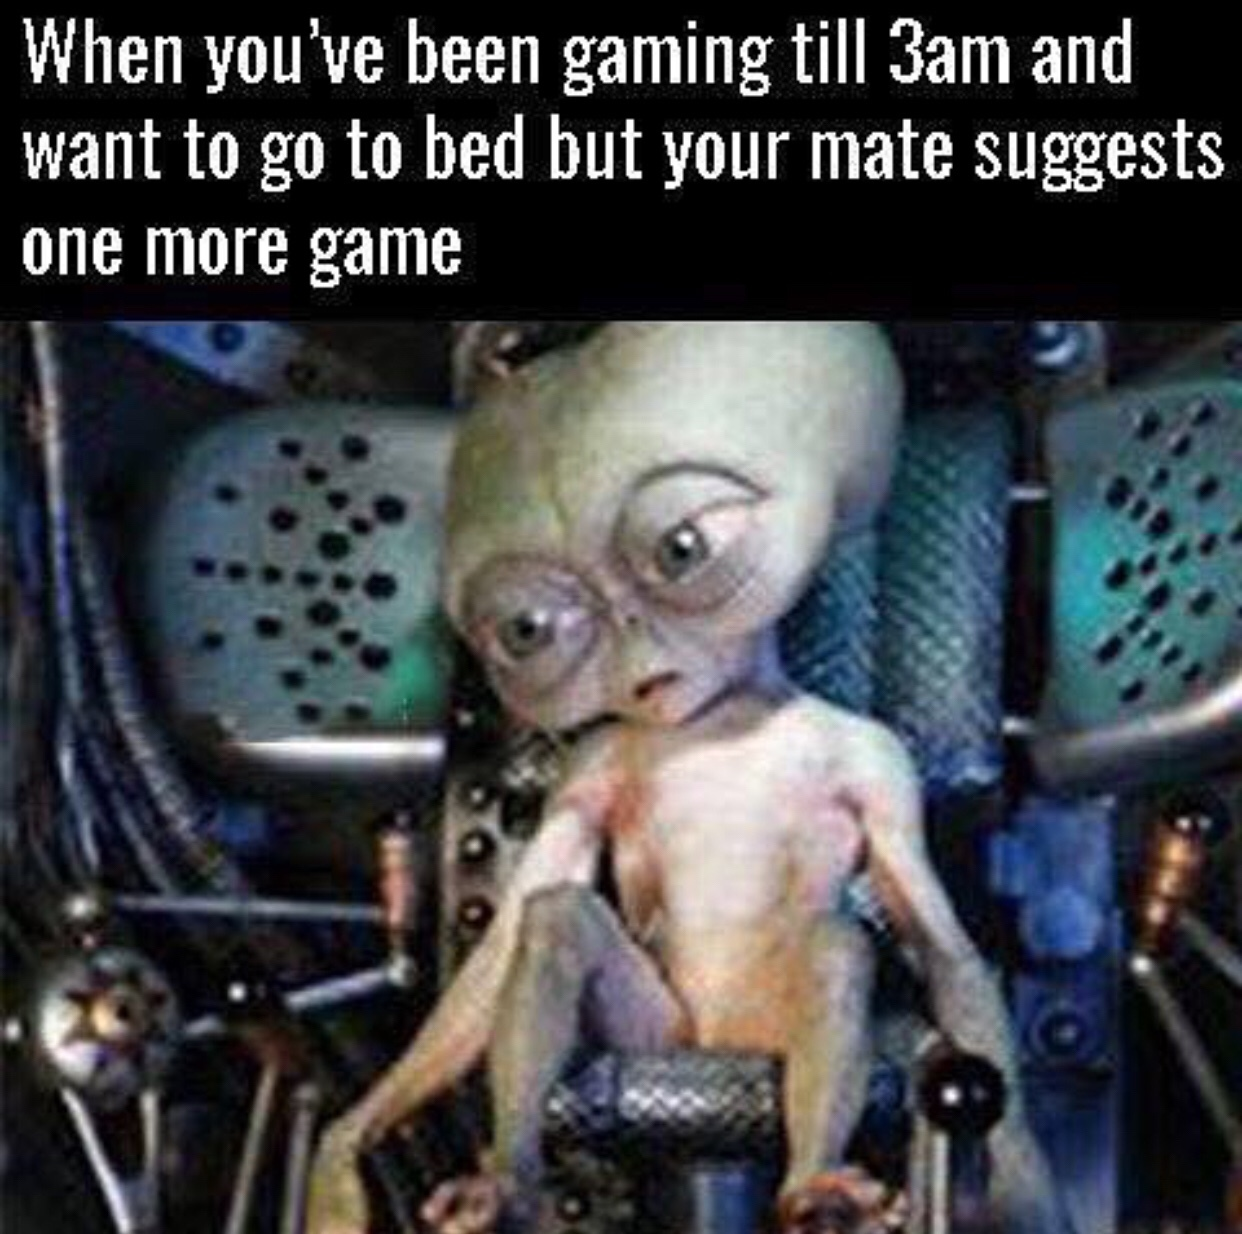 hardcore gamers be like... - meme